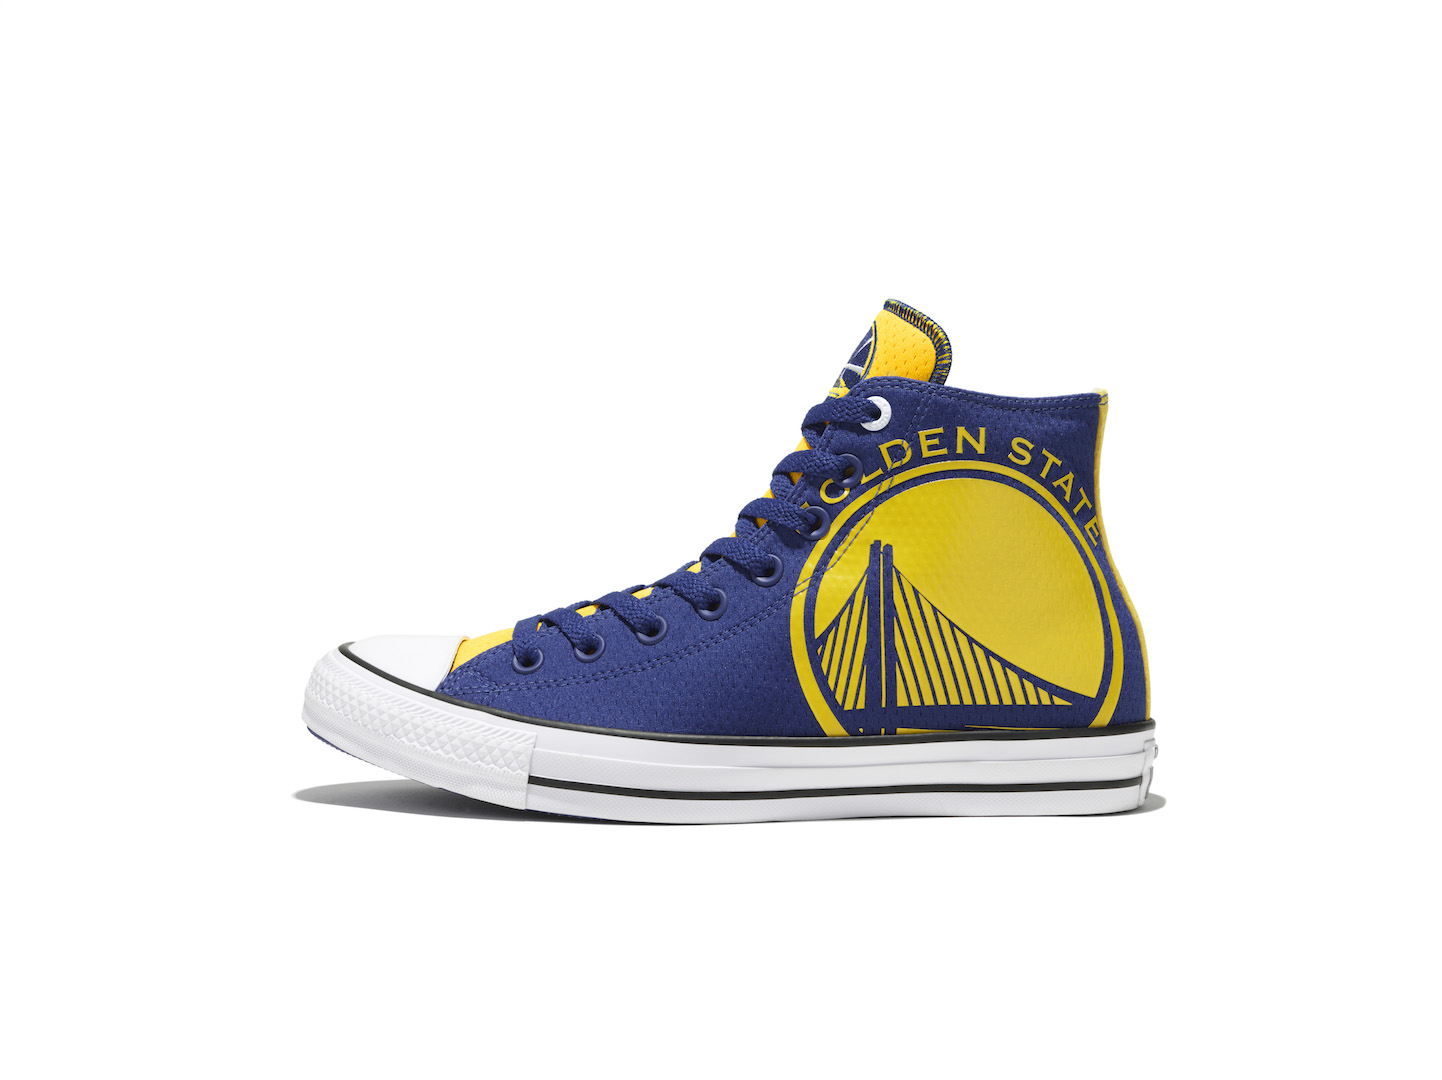 HO17_NBA_CTAS_SE_INSPIRED_GOLDEN_STATE_WARRIORS_159416C_MEDIAL_w1_RGB_copy